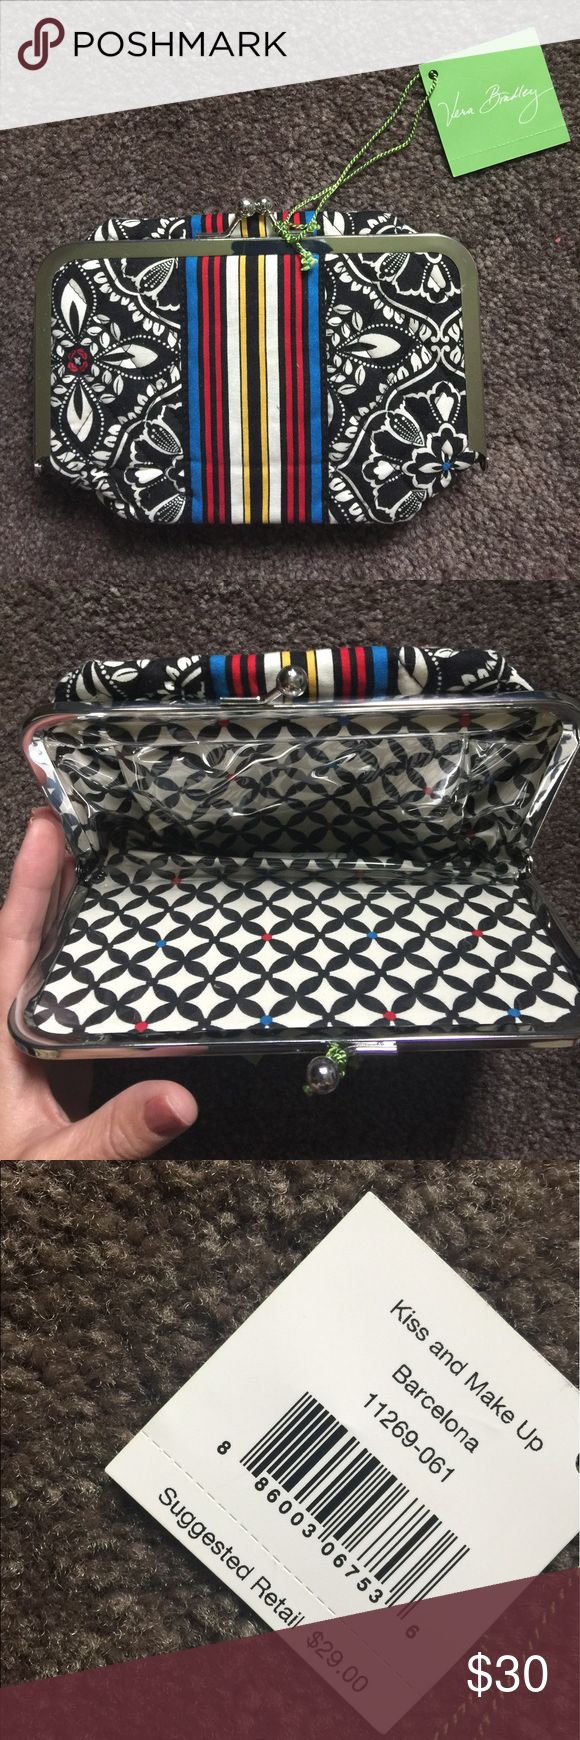 Let's kiss and make up Barcelona make up bag! Vera Bradley does it again, she's amazing! This make up bag is lined in plastic for easy cleanup with a vintage closure. This is absolutely adorable and brand-new in packaging. This retails for $45. Thanks! Vera Bradley Accessories